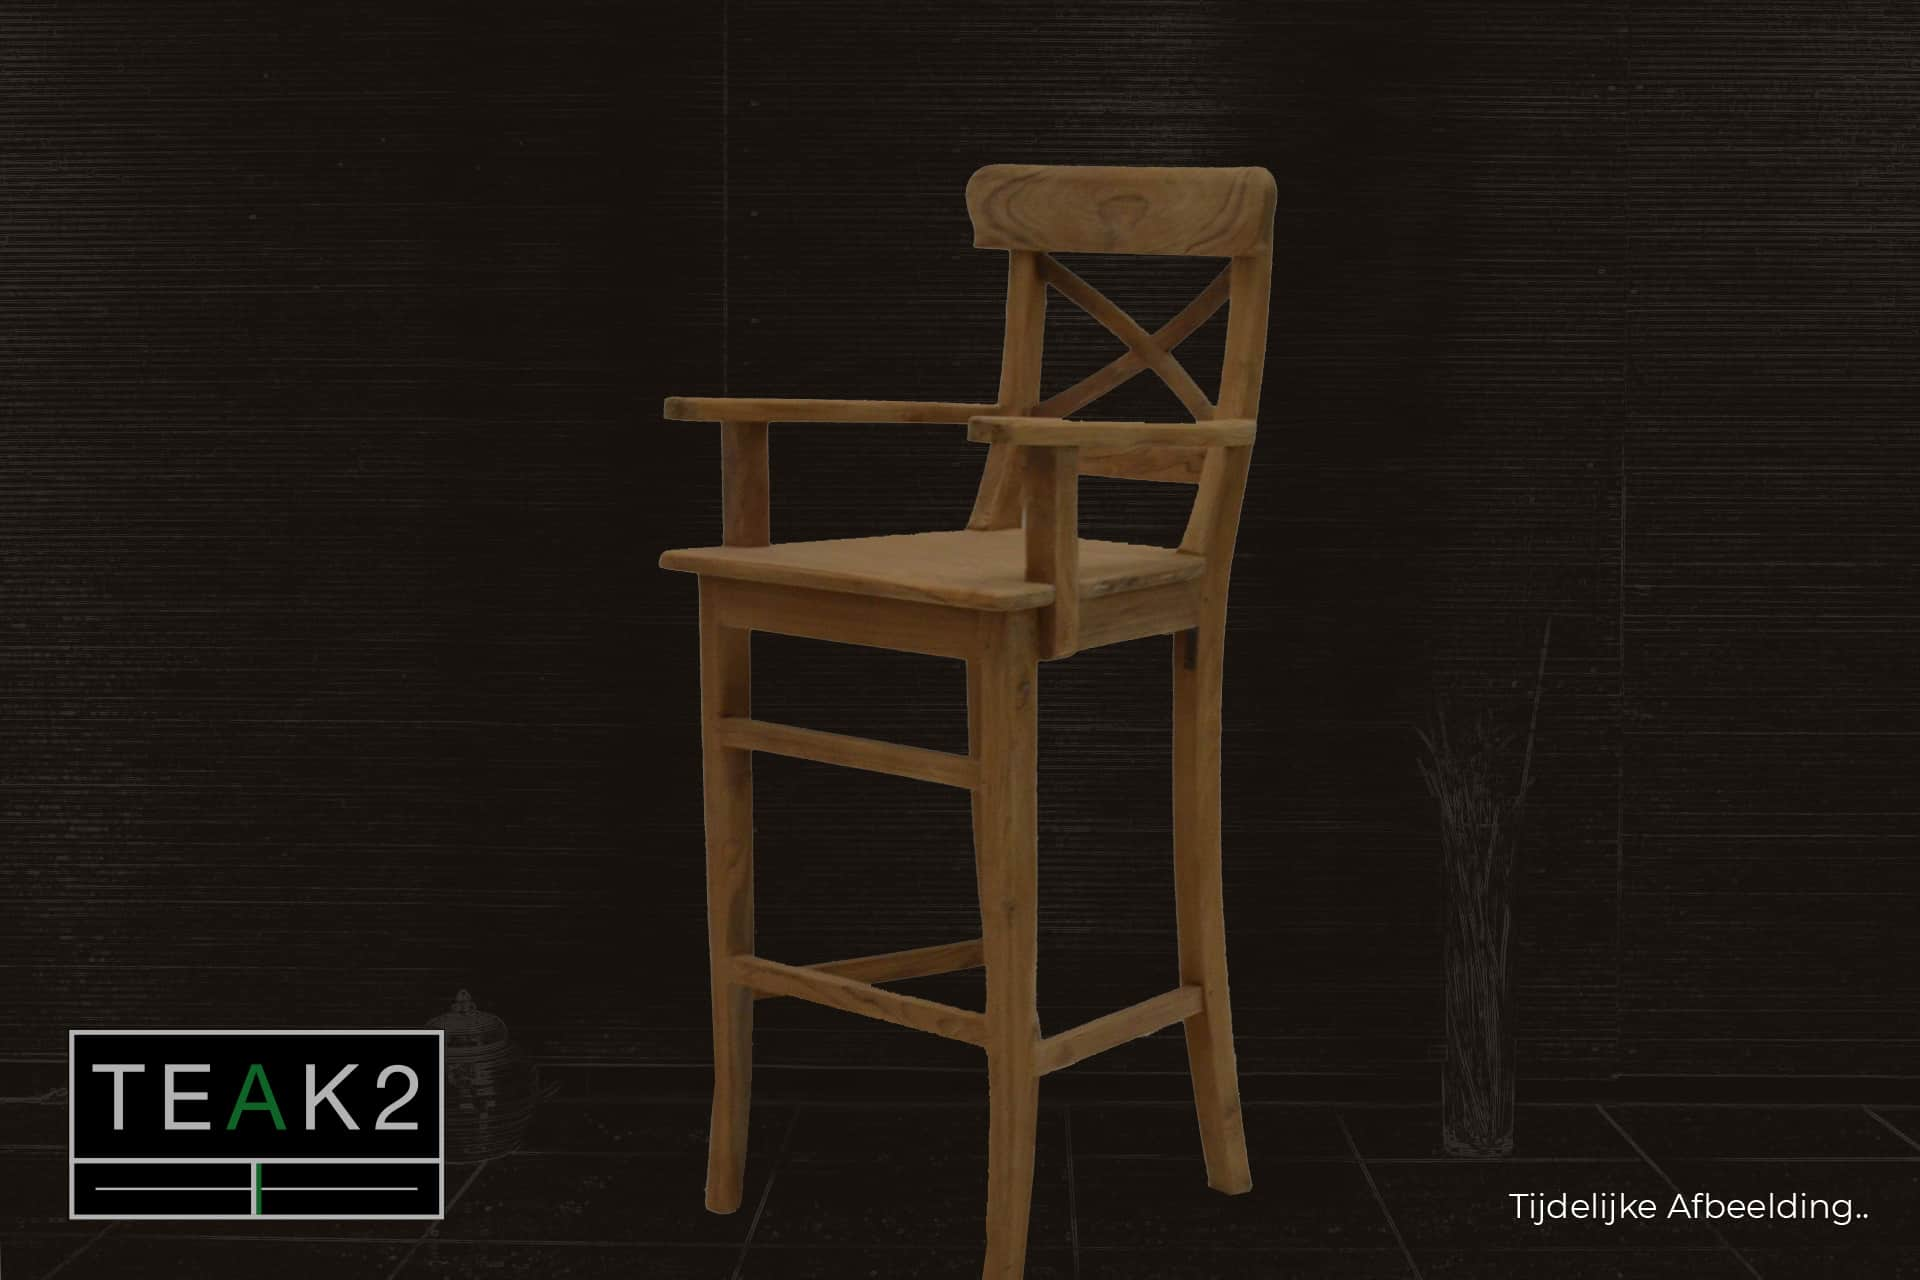 Bar stool Teak Kursi Palang Arm | modern wooden bar stool with armrest in smooth teak and cross in the back. Comfortable high stool in teak - TEAK2.